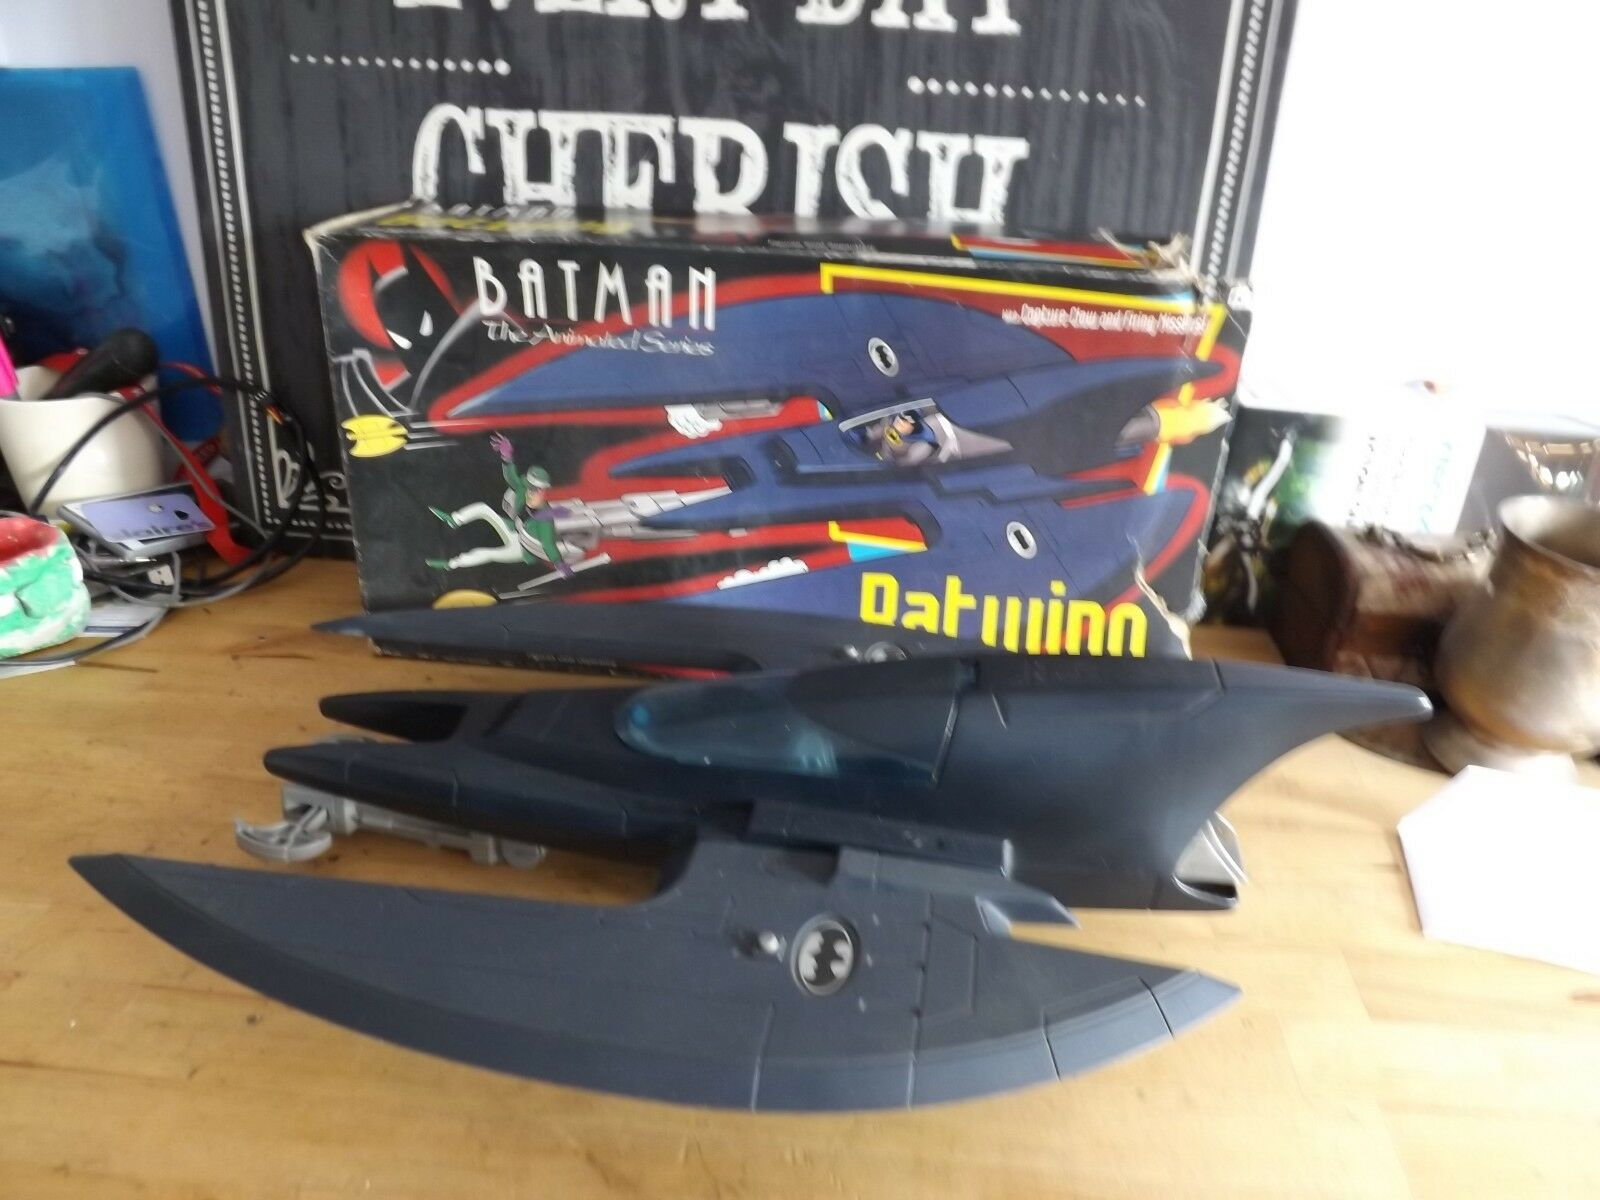 BATuomo serie animate DC Comics 1993 KENNER Batwing in Scatola